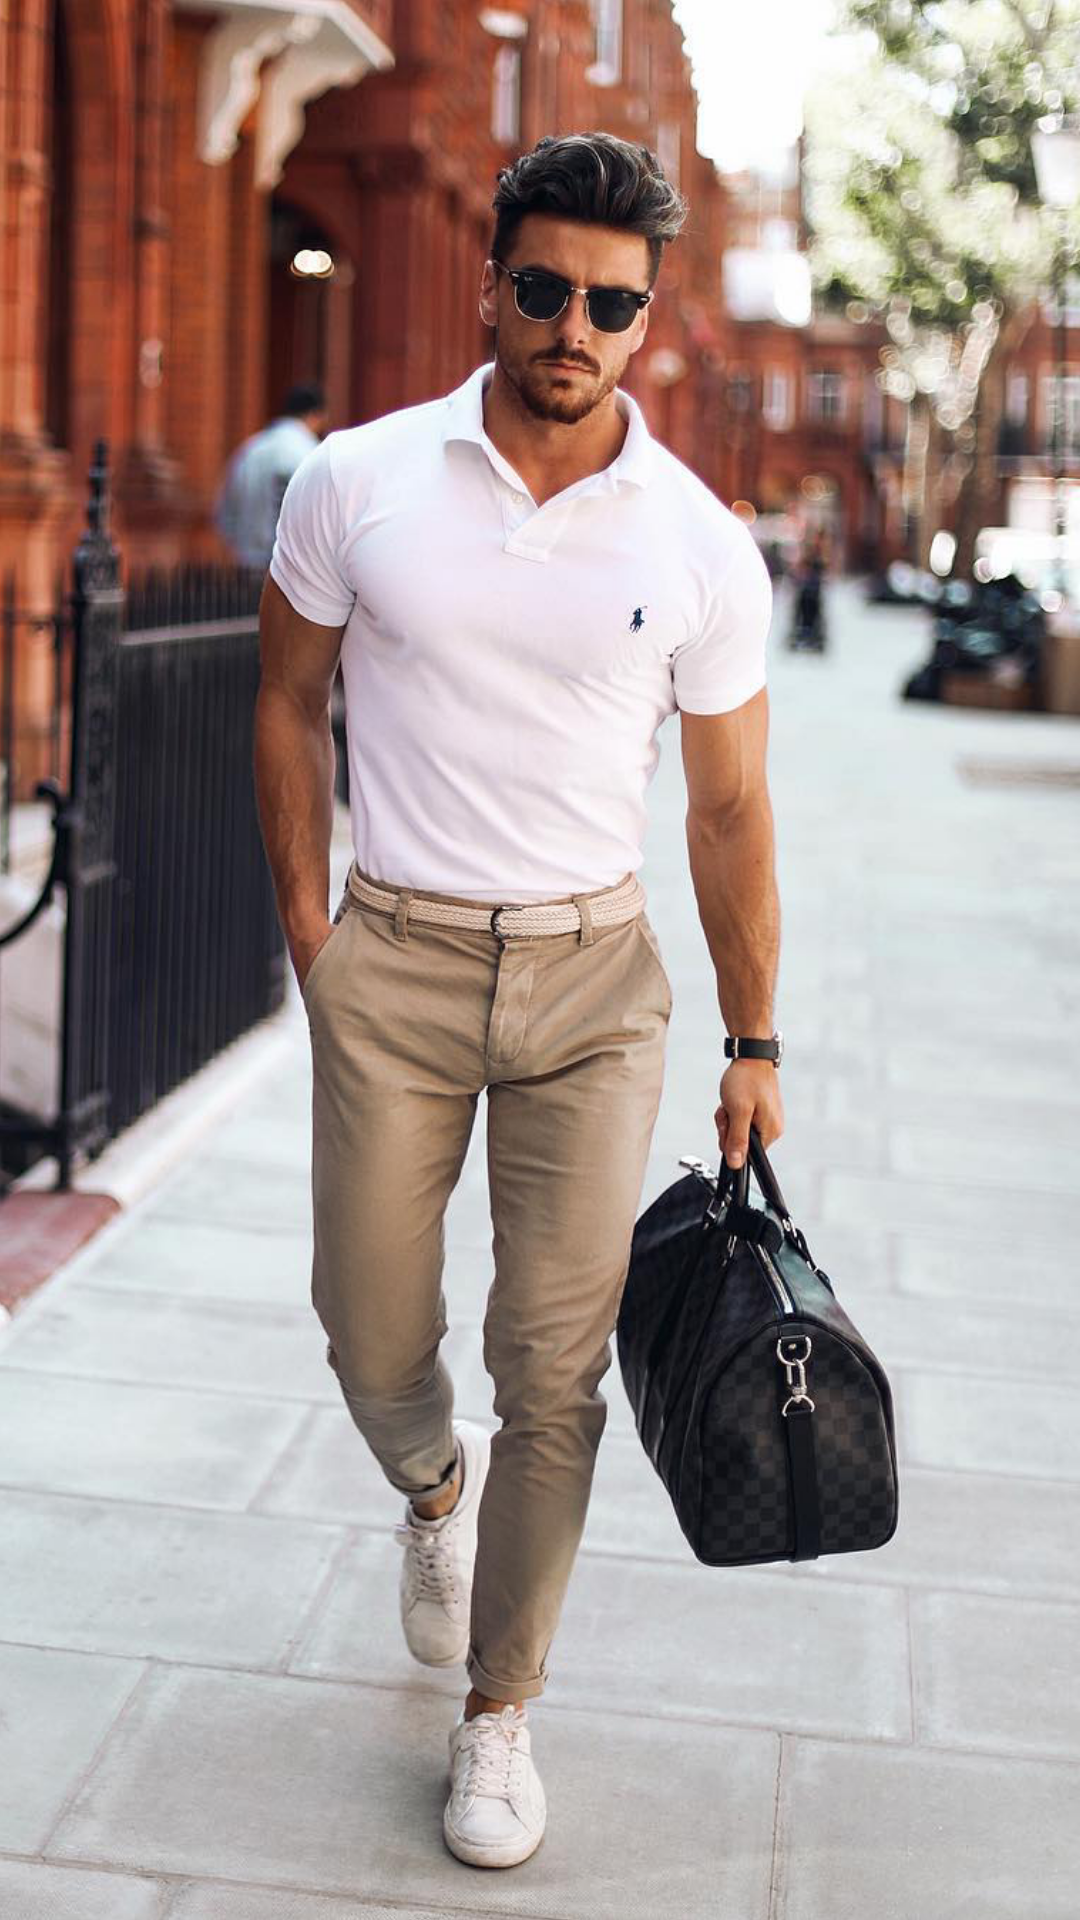 f5c49bede4 Outfit 1. Beige Chinos + White Polo Shirt + White Sneakers